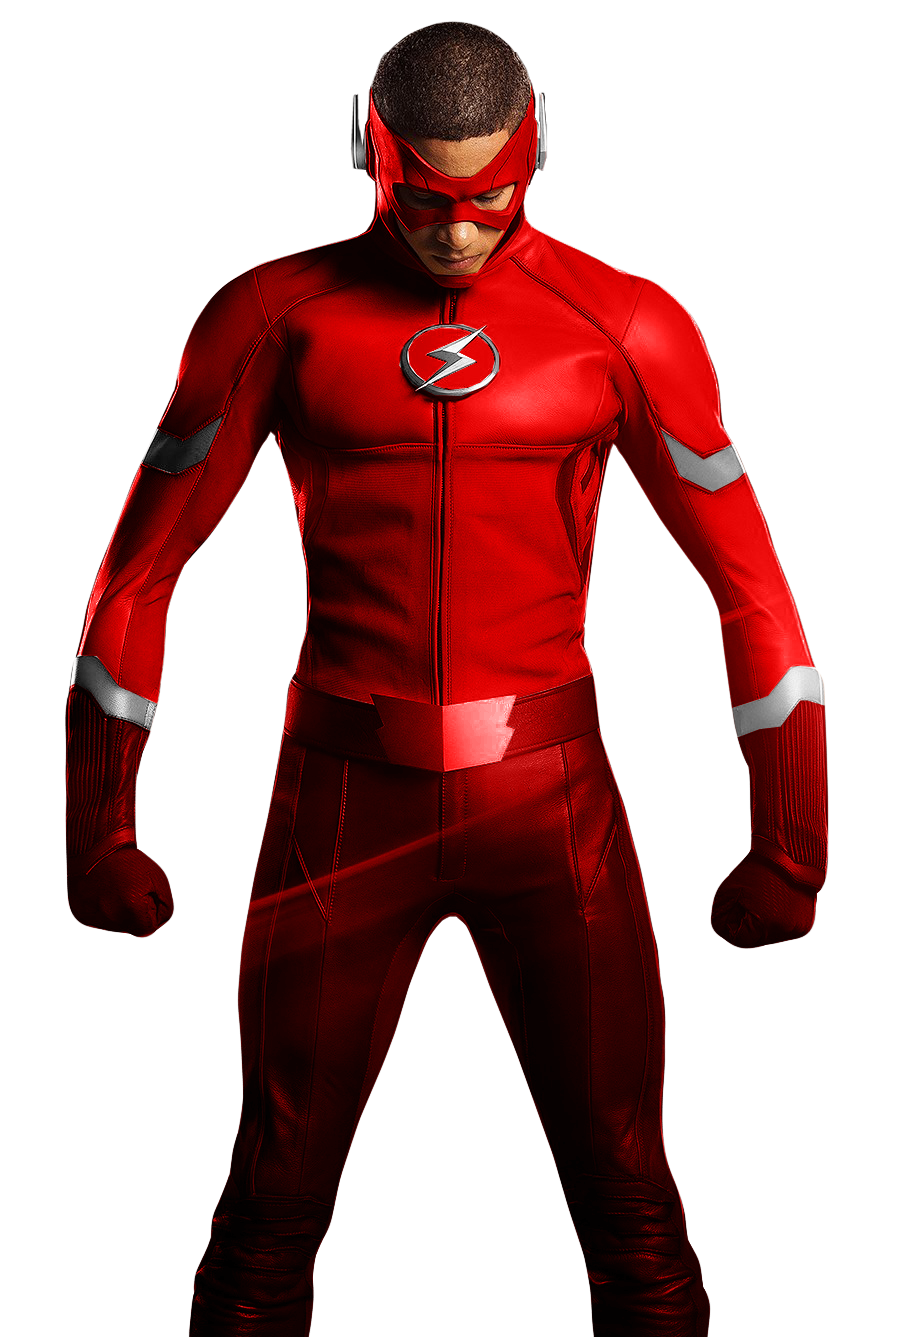 Wally West Designs Png